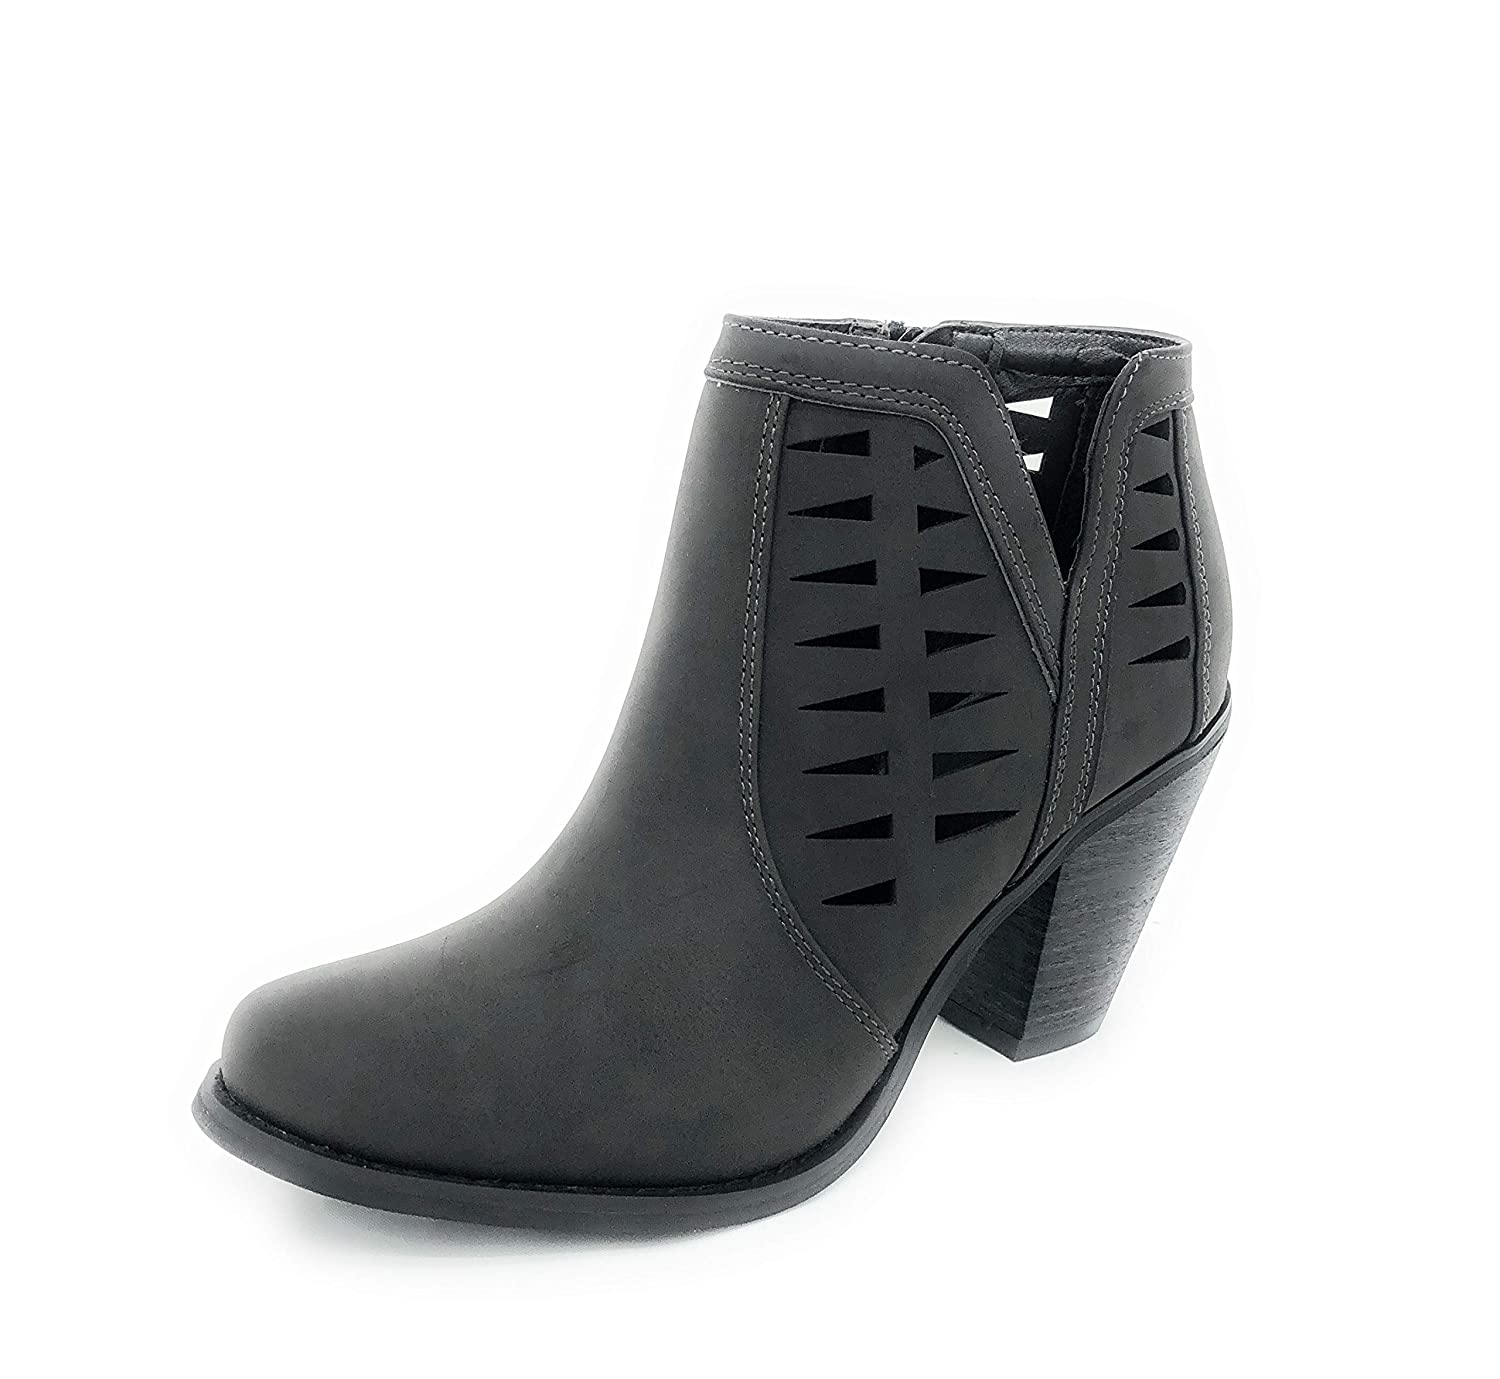 Black-irene-02 SOLE COLLECTION Faux Leather Suede Strap Side Zipper Chunky Block Heels Dress Ankle Boots